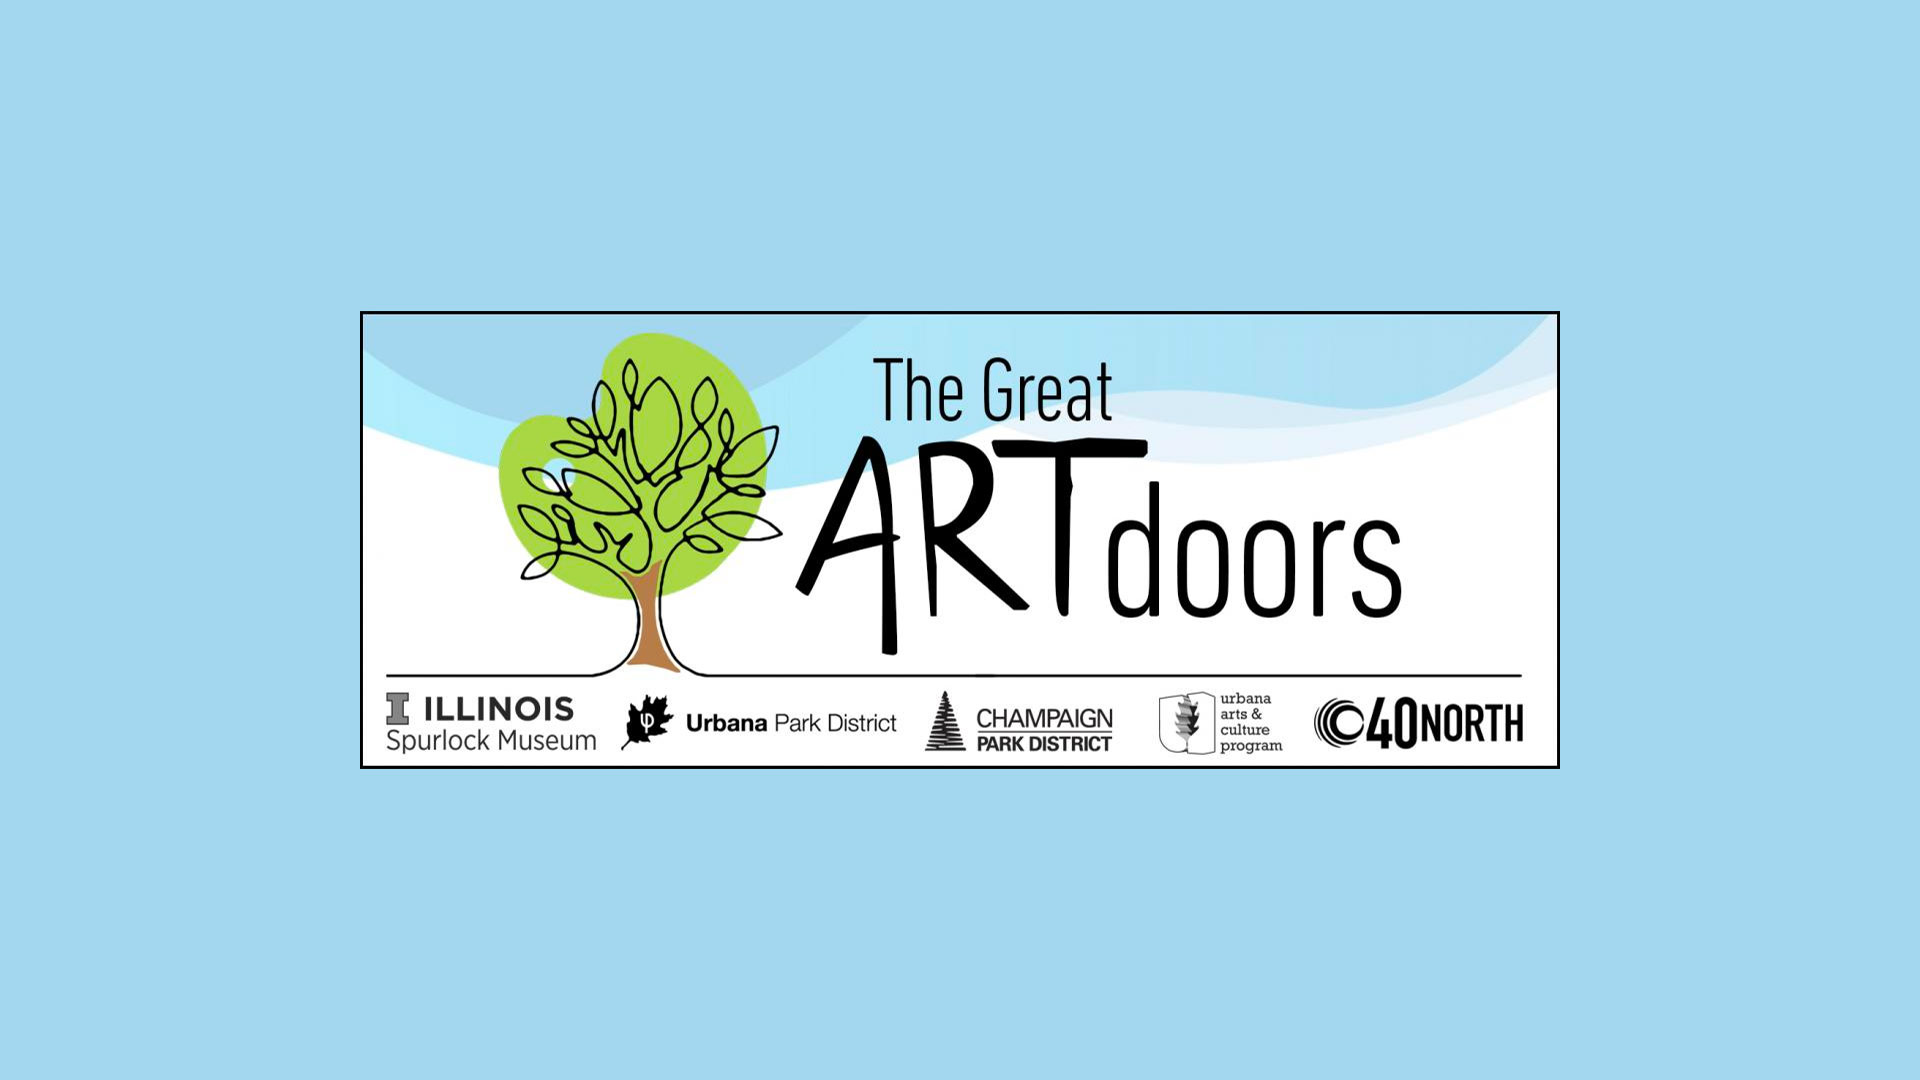 Call for Submissions to The Great ARTdoors overview image